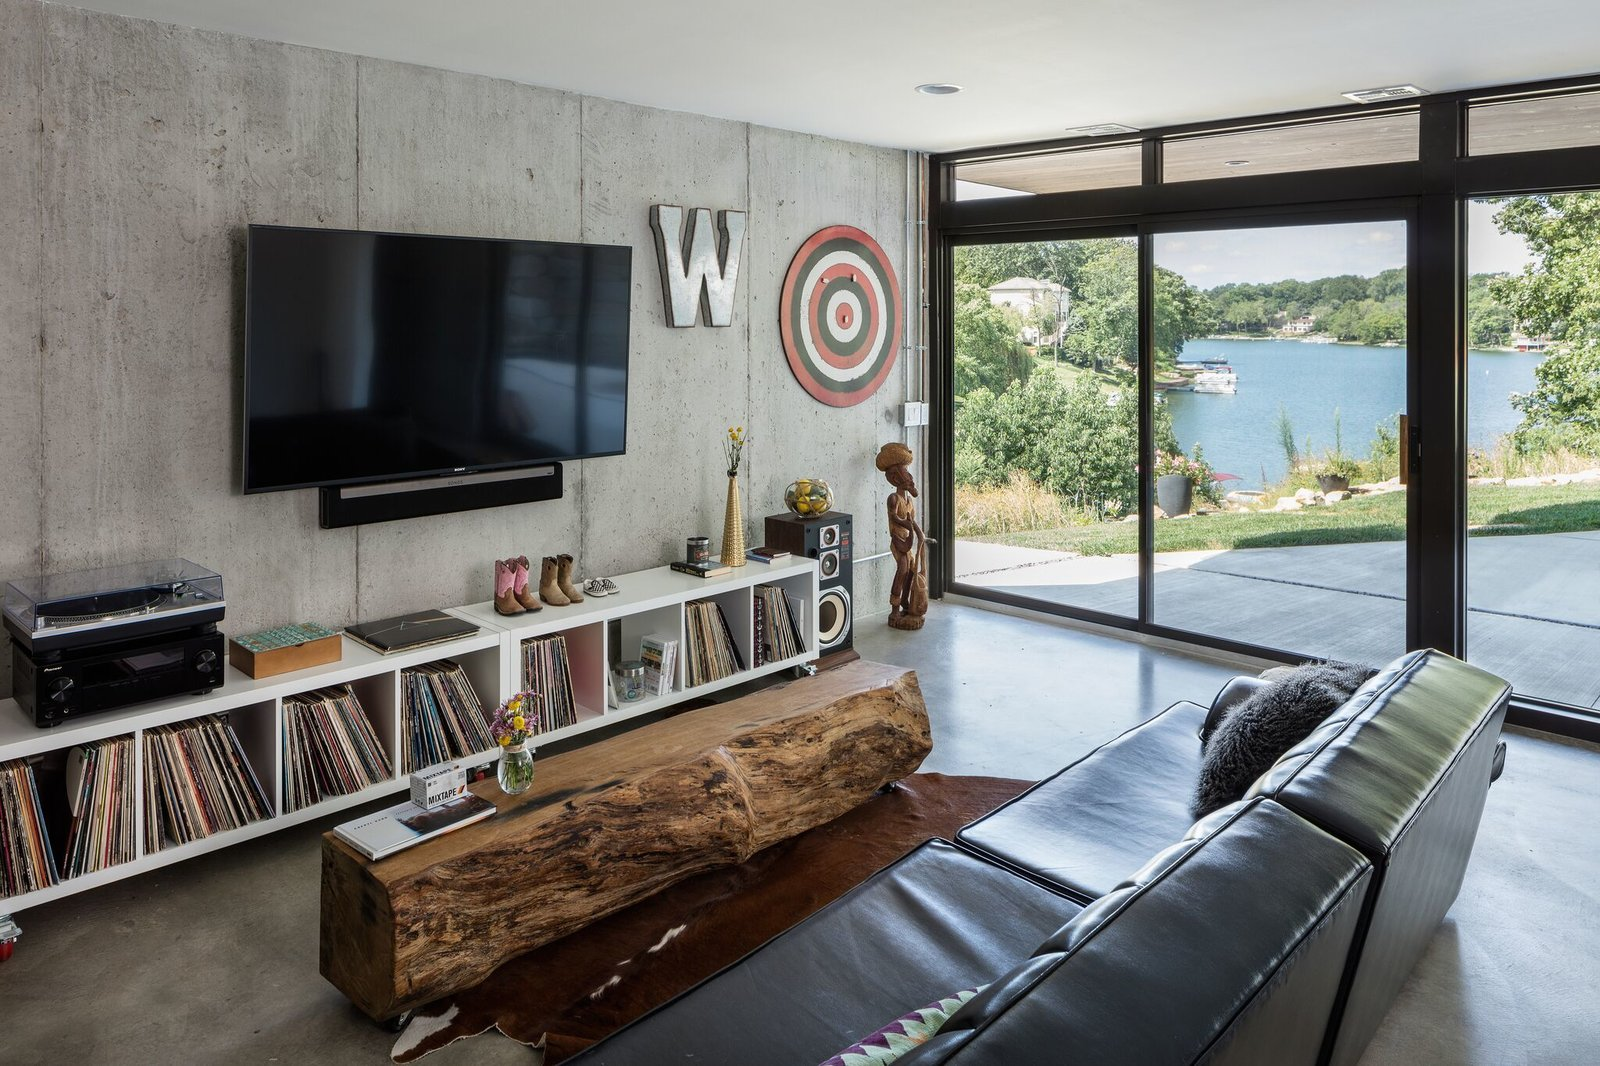 Living Room And Concrete Floor With Lake Views Photo 2 Of 11 In Modern